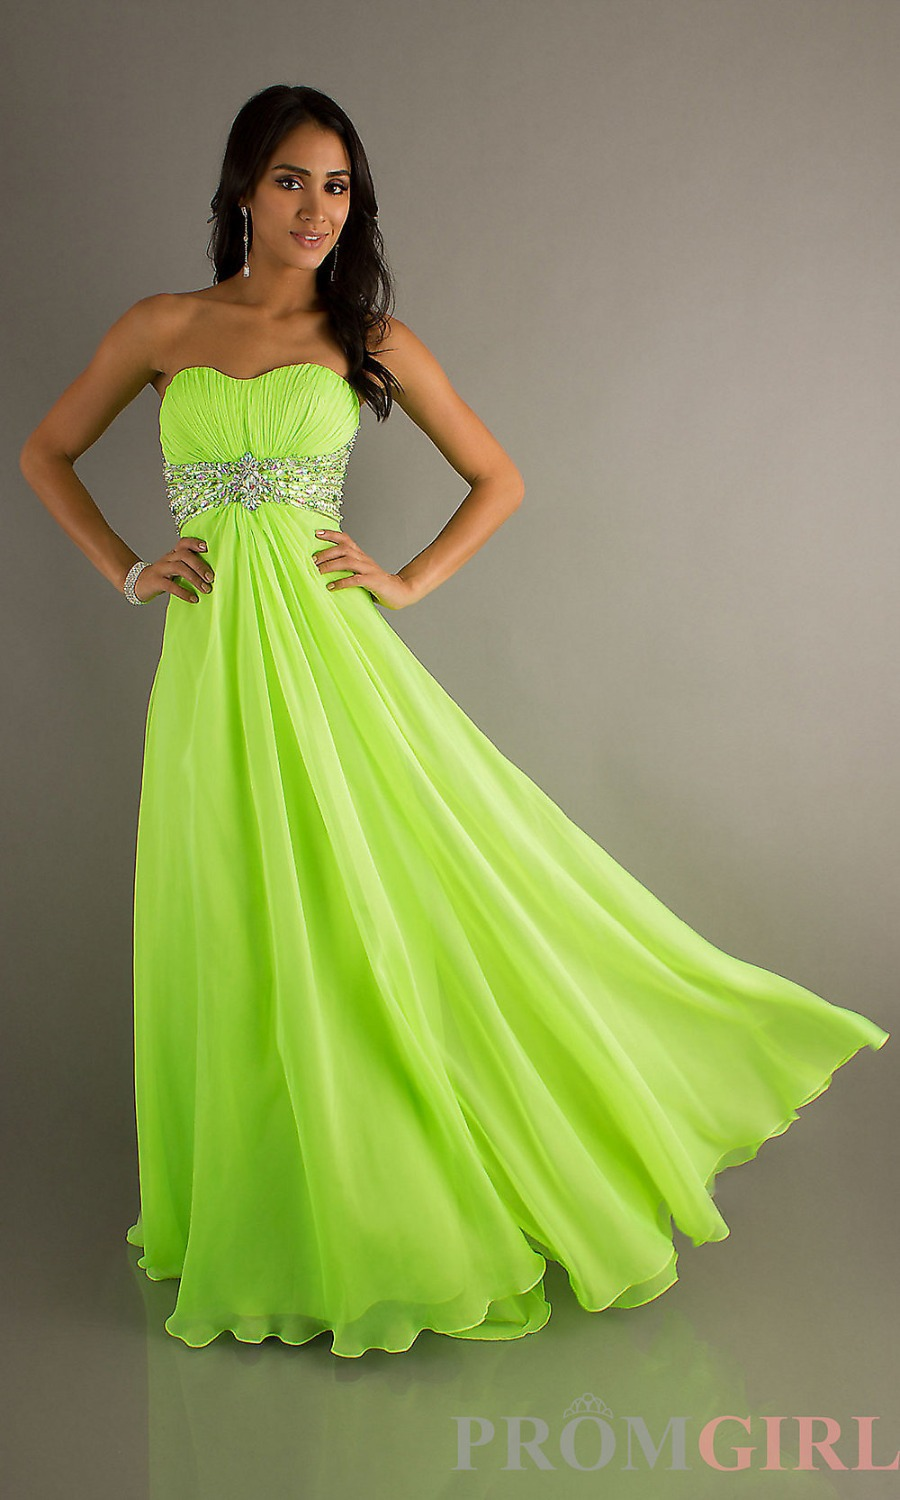 Green Sweetheart Dress Review 2017 Always Fashion